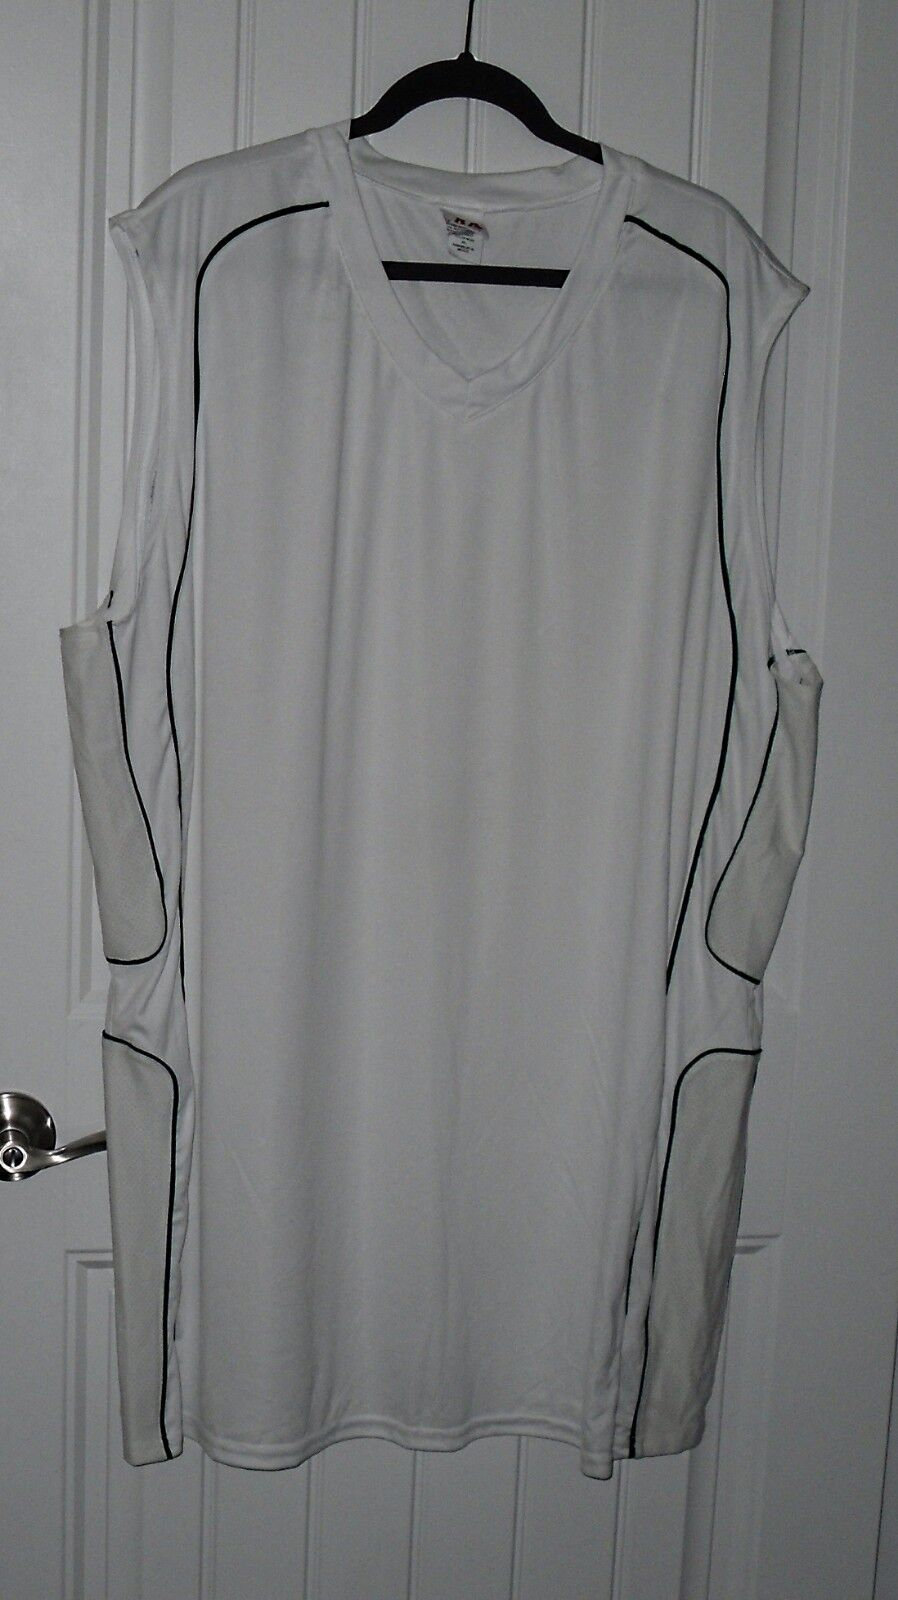 WHITE A4 MEN/'S REVERSIBLE MESH TANK GAME MUSCLE BASKETBALL JERSEY NEW